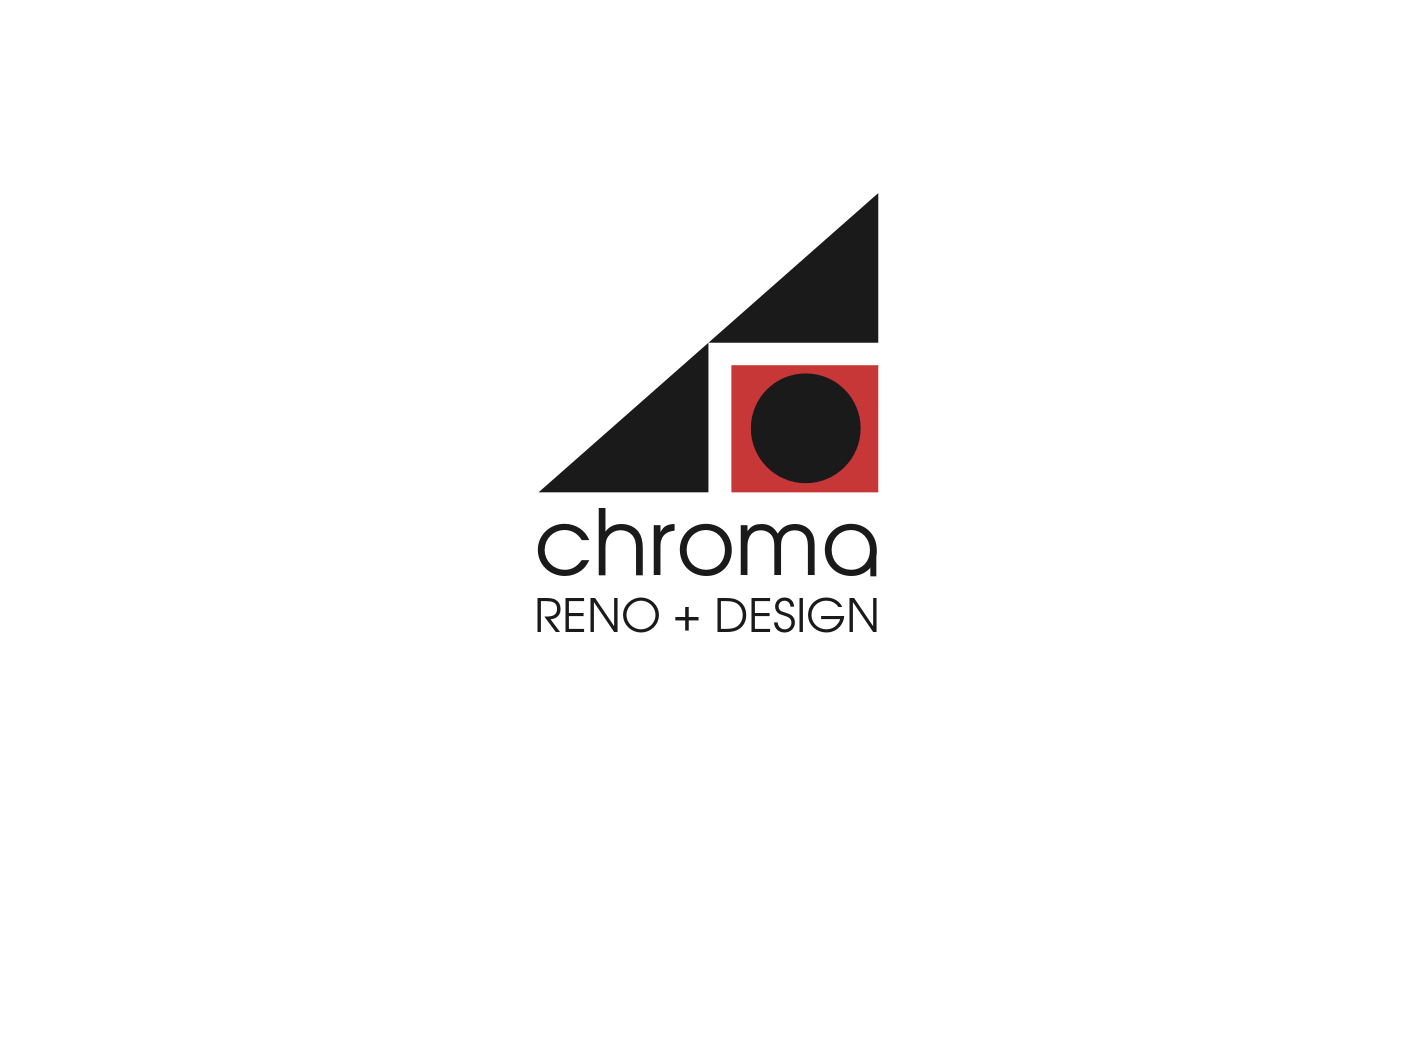 Logo Design by JaroslavProcka - Entry No. 325 in the Logo Design Contest Inspiring Logo Design for Chroma Reno+Design.